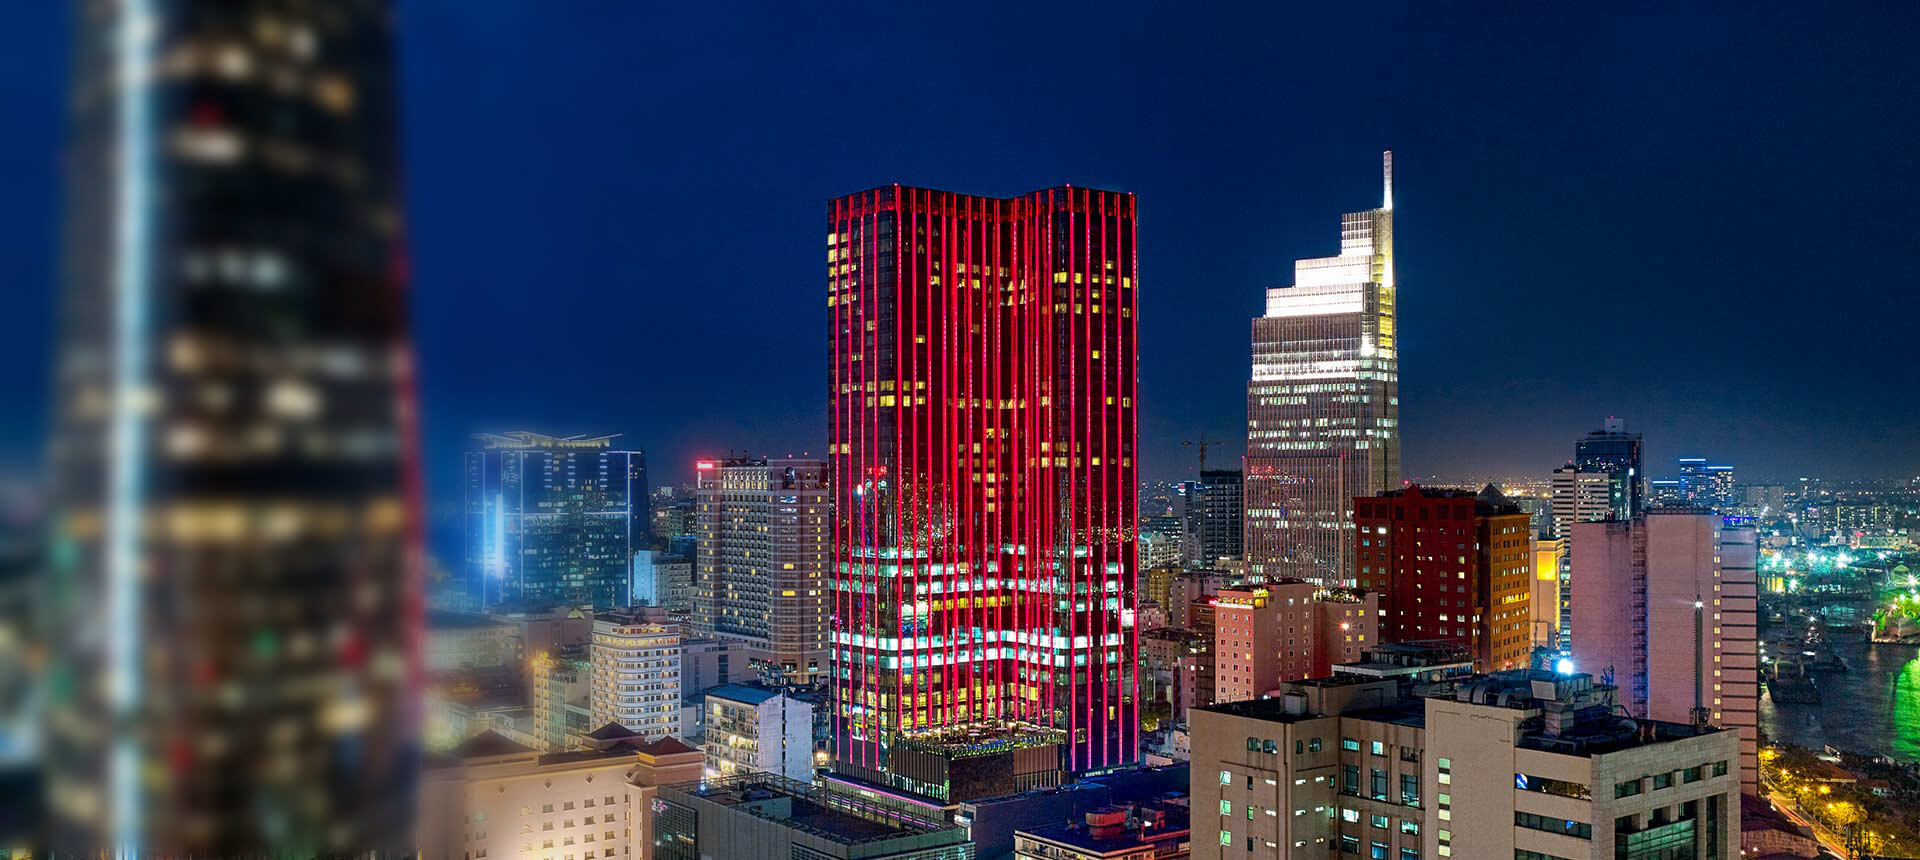 Saigon Timesquare in red